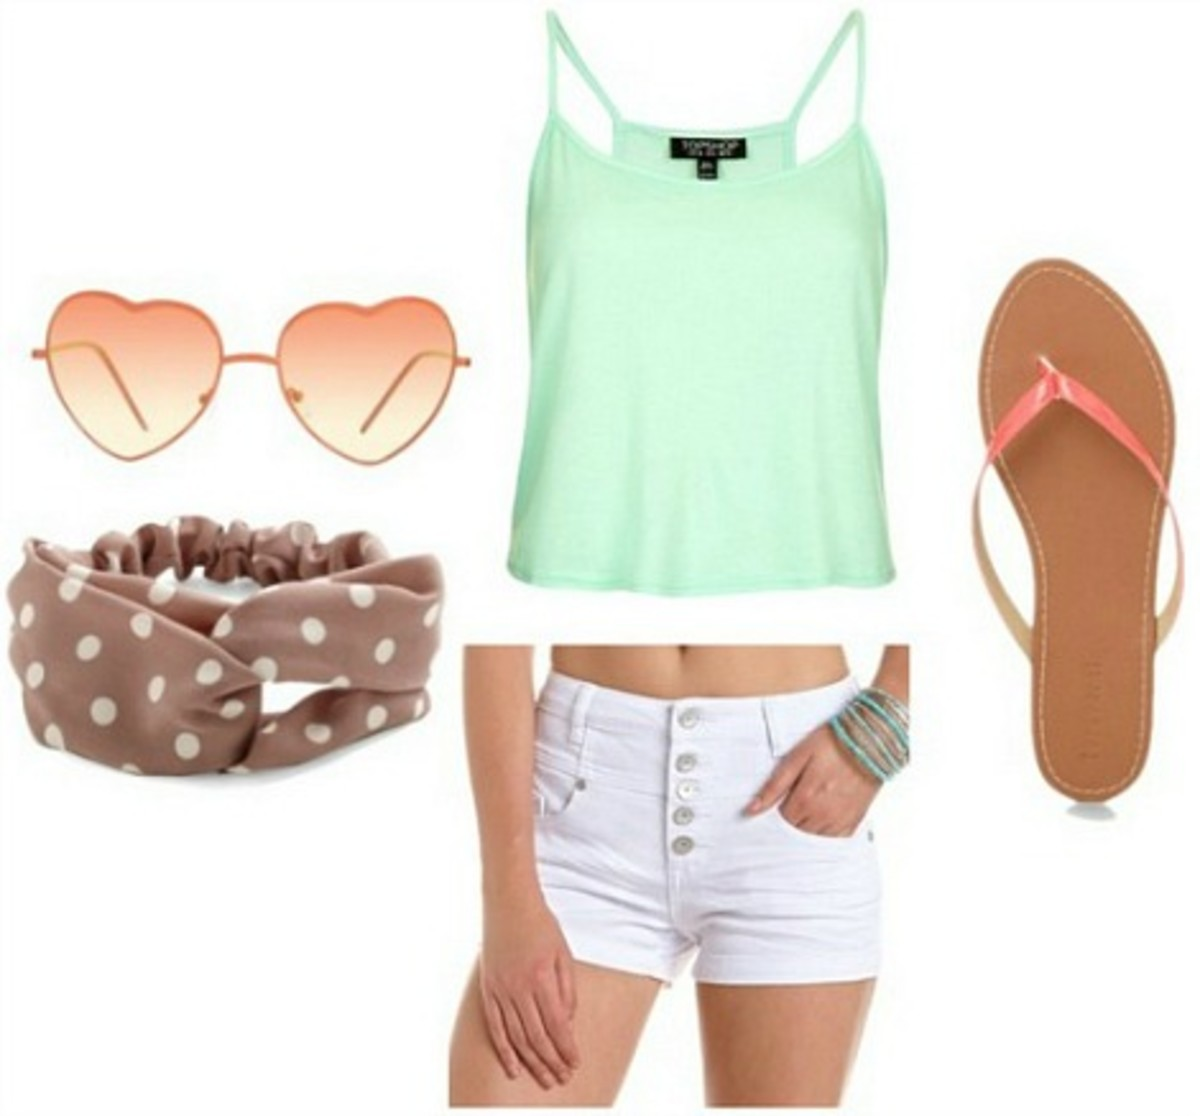 white-shorts-green-light-cami-orange-shoe-sandals-head-sun-denim-howtowear-fashion-style-spring-summer-outfit-weekend.jpg